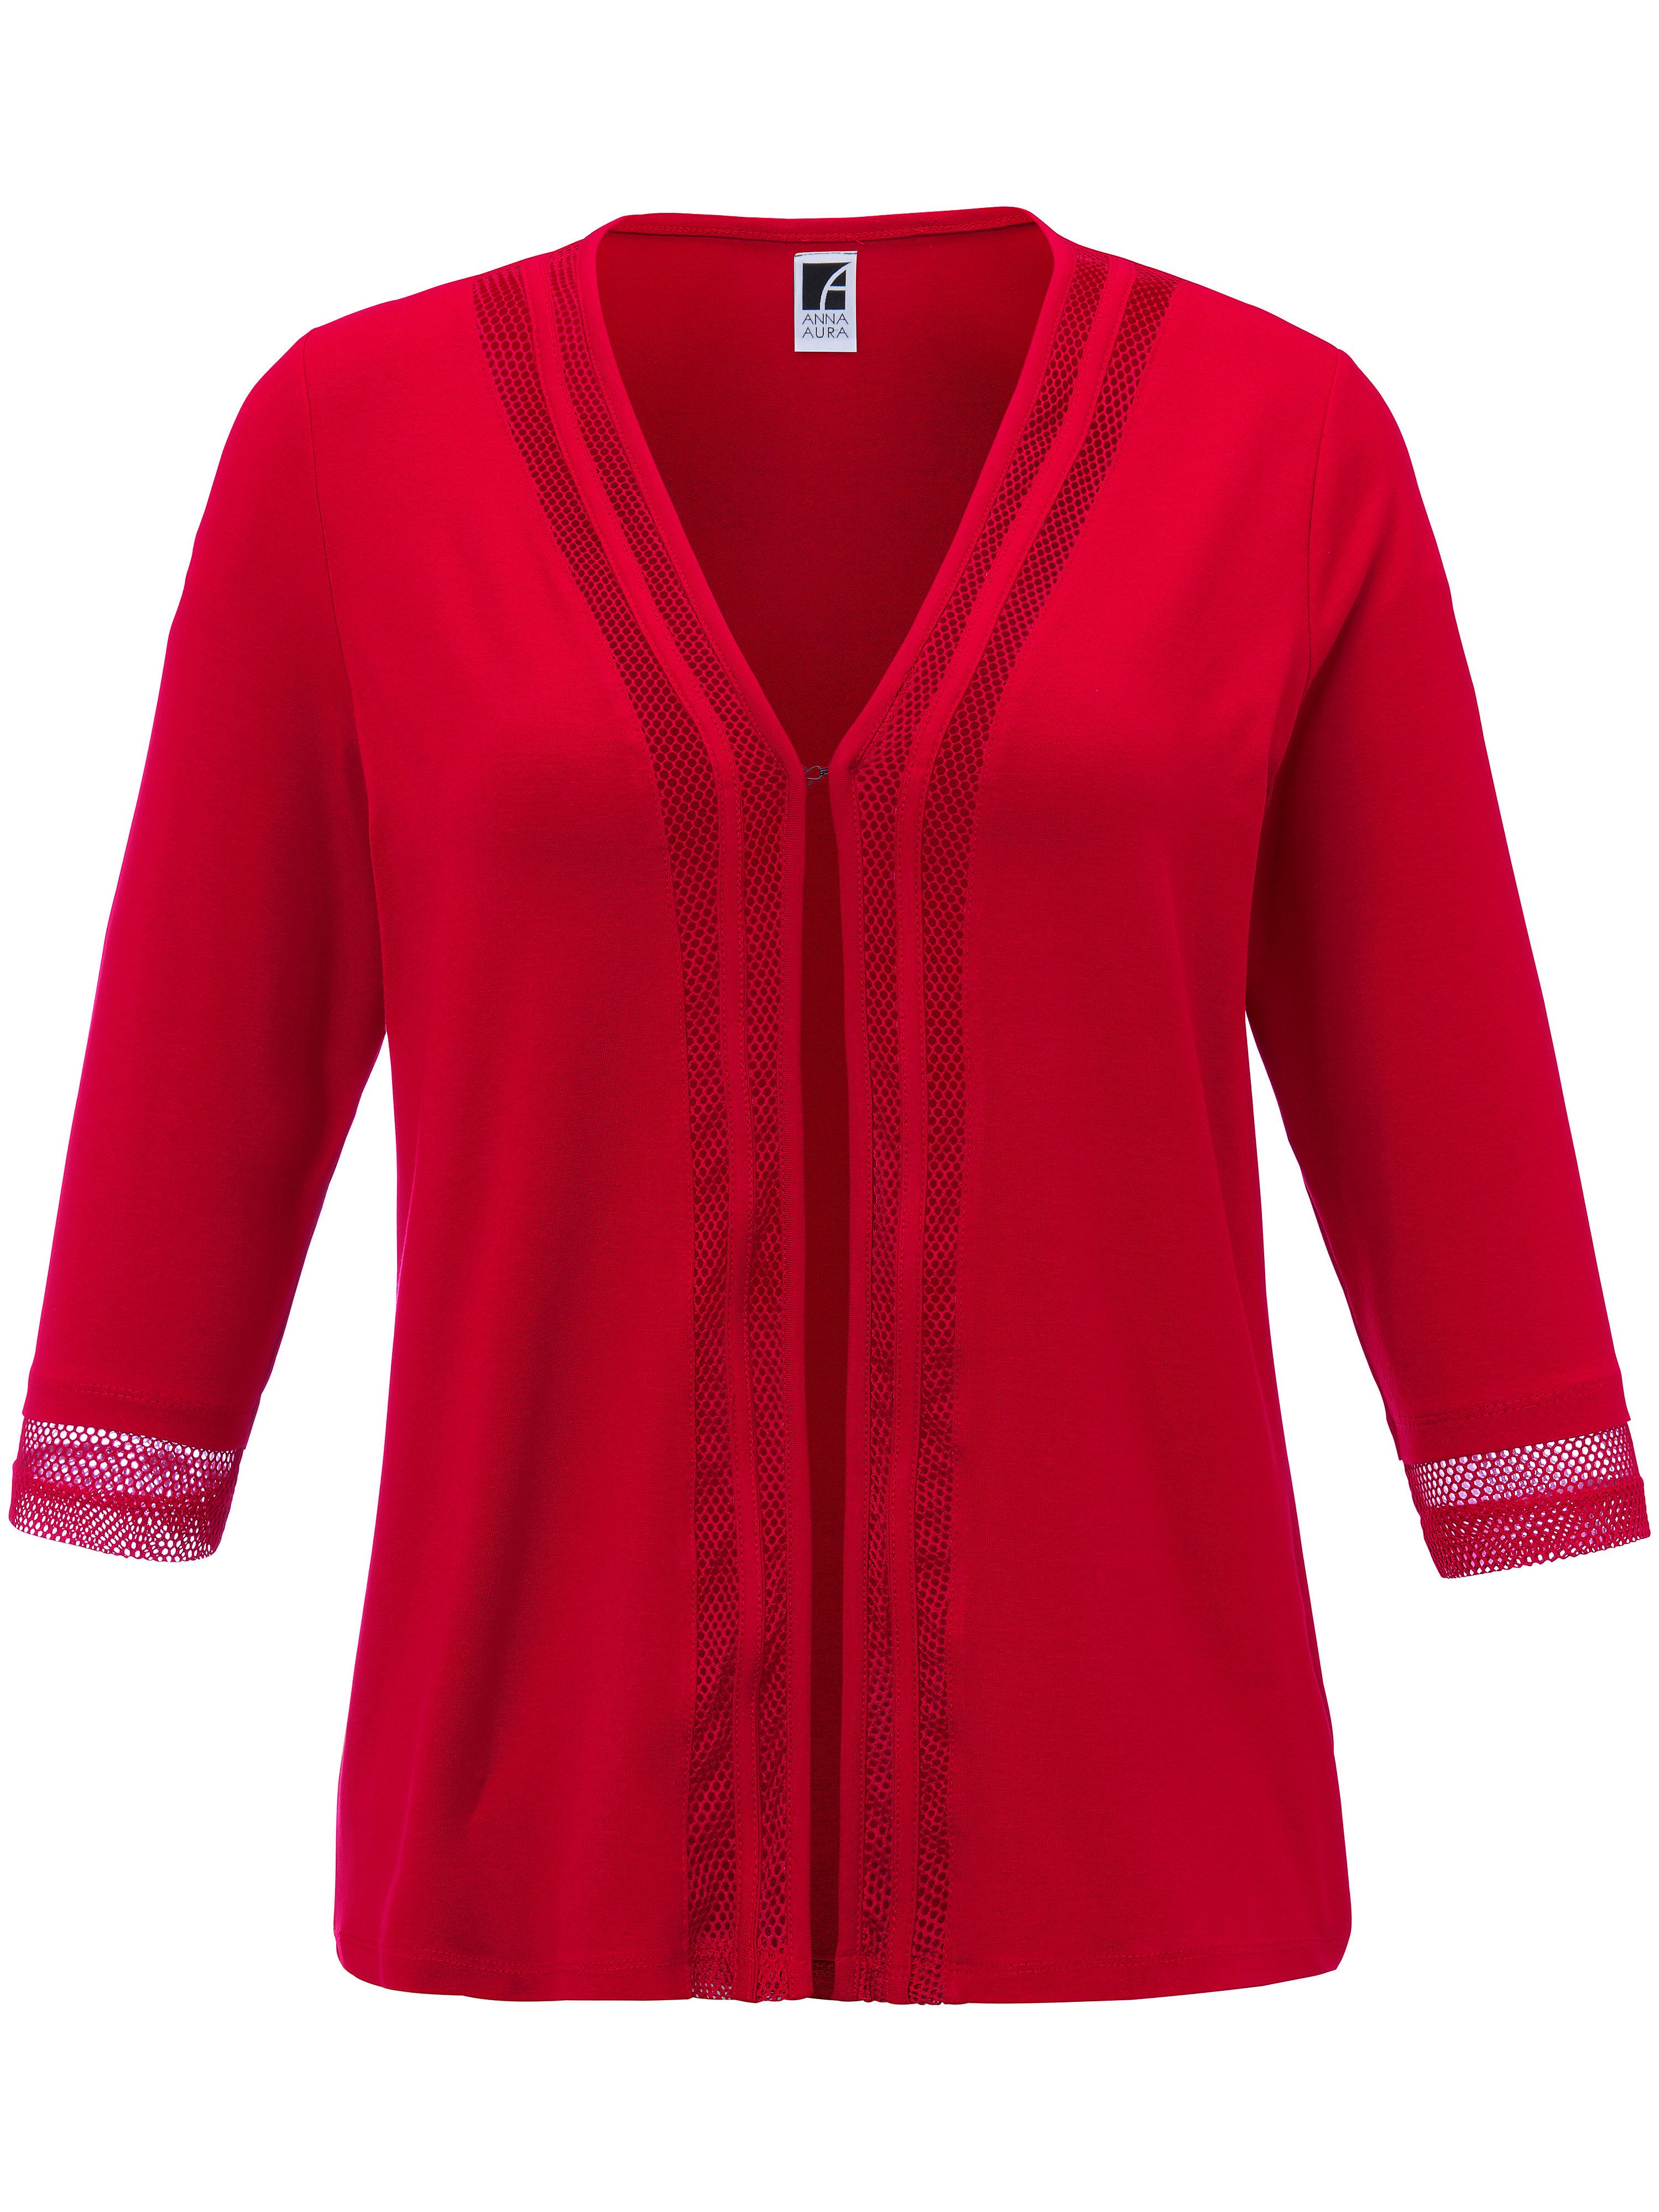 Le gilet manches 3/4  Anna Aura rouge taille 58